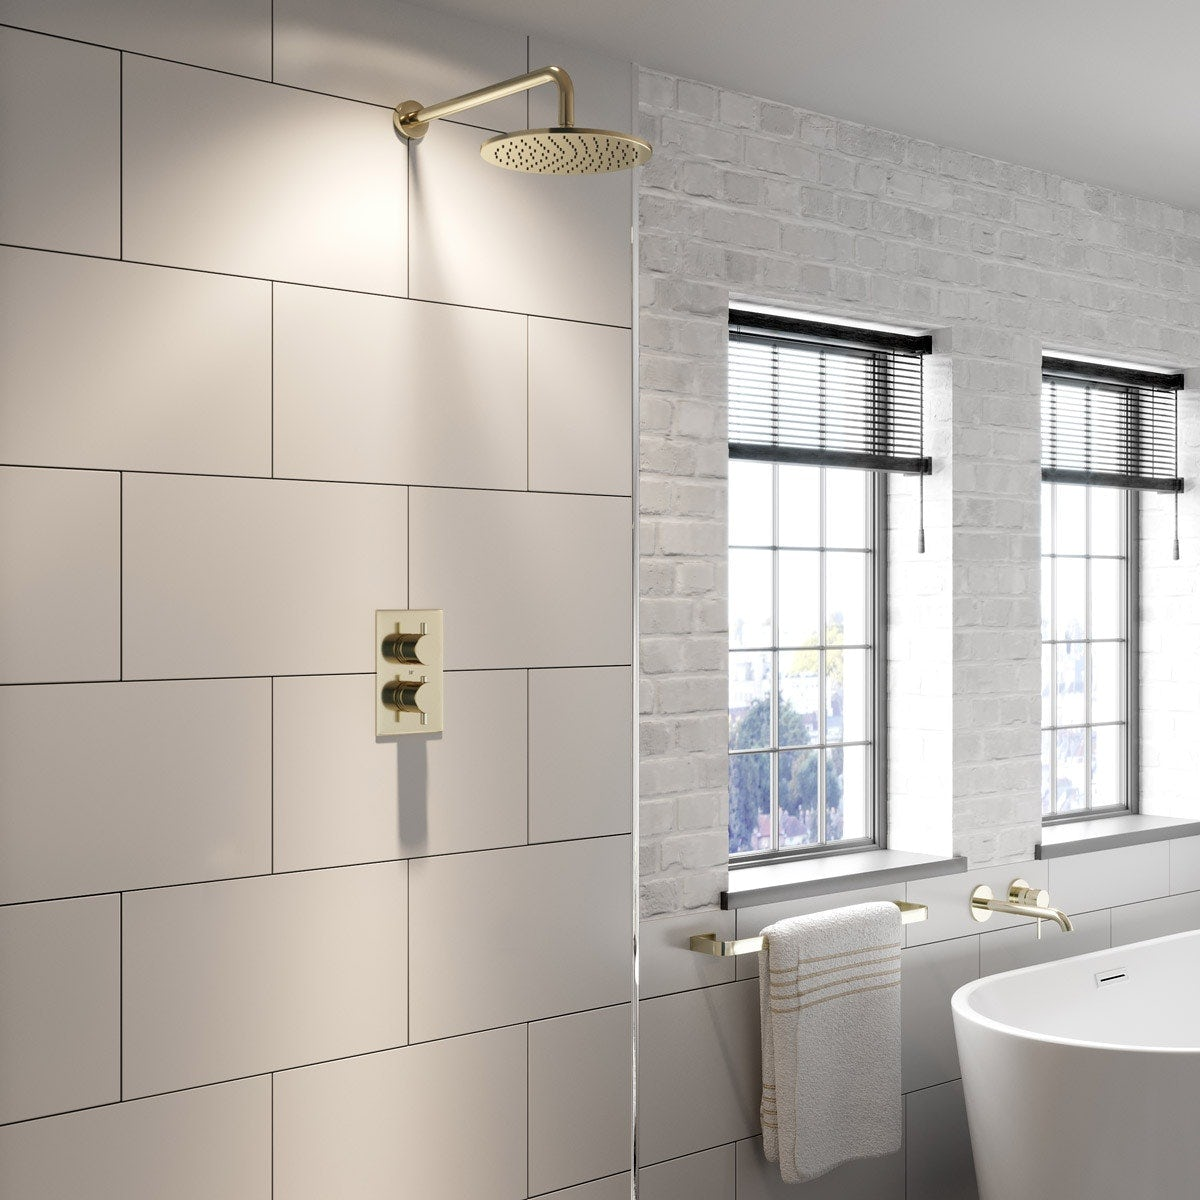 Spencer collection taps, showers & accessories